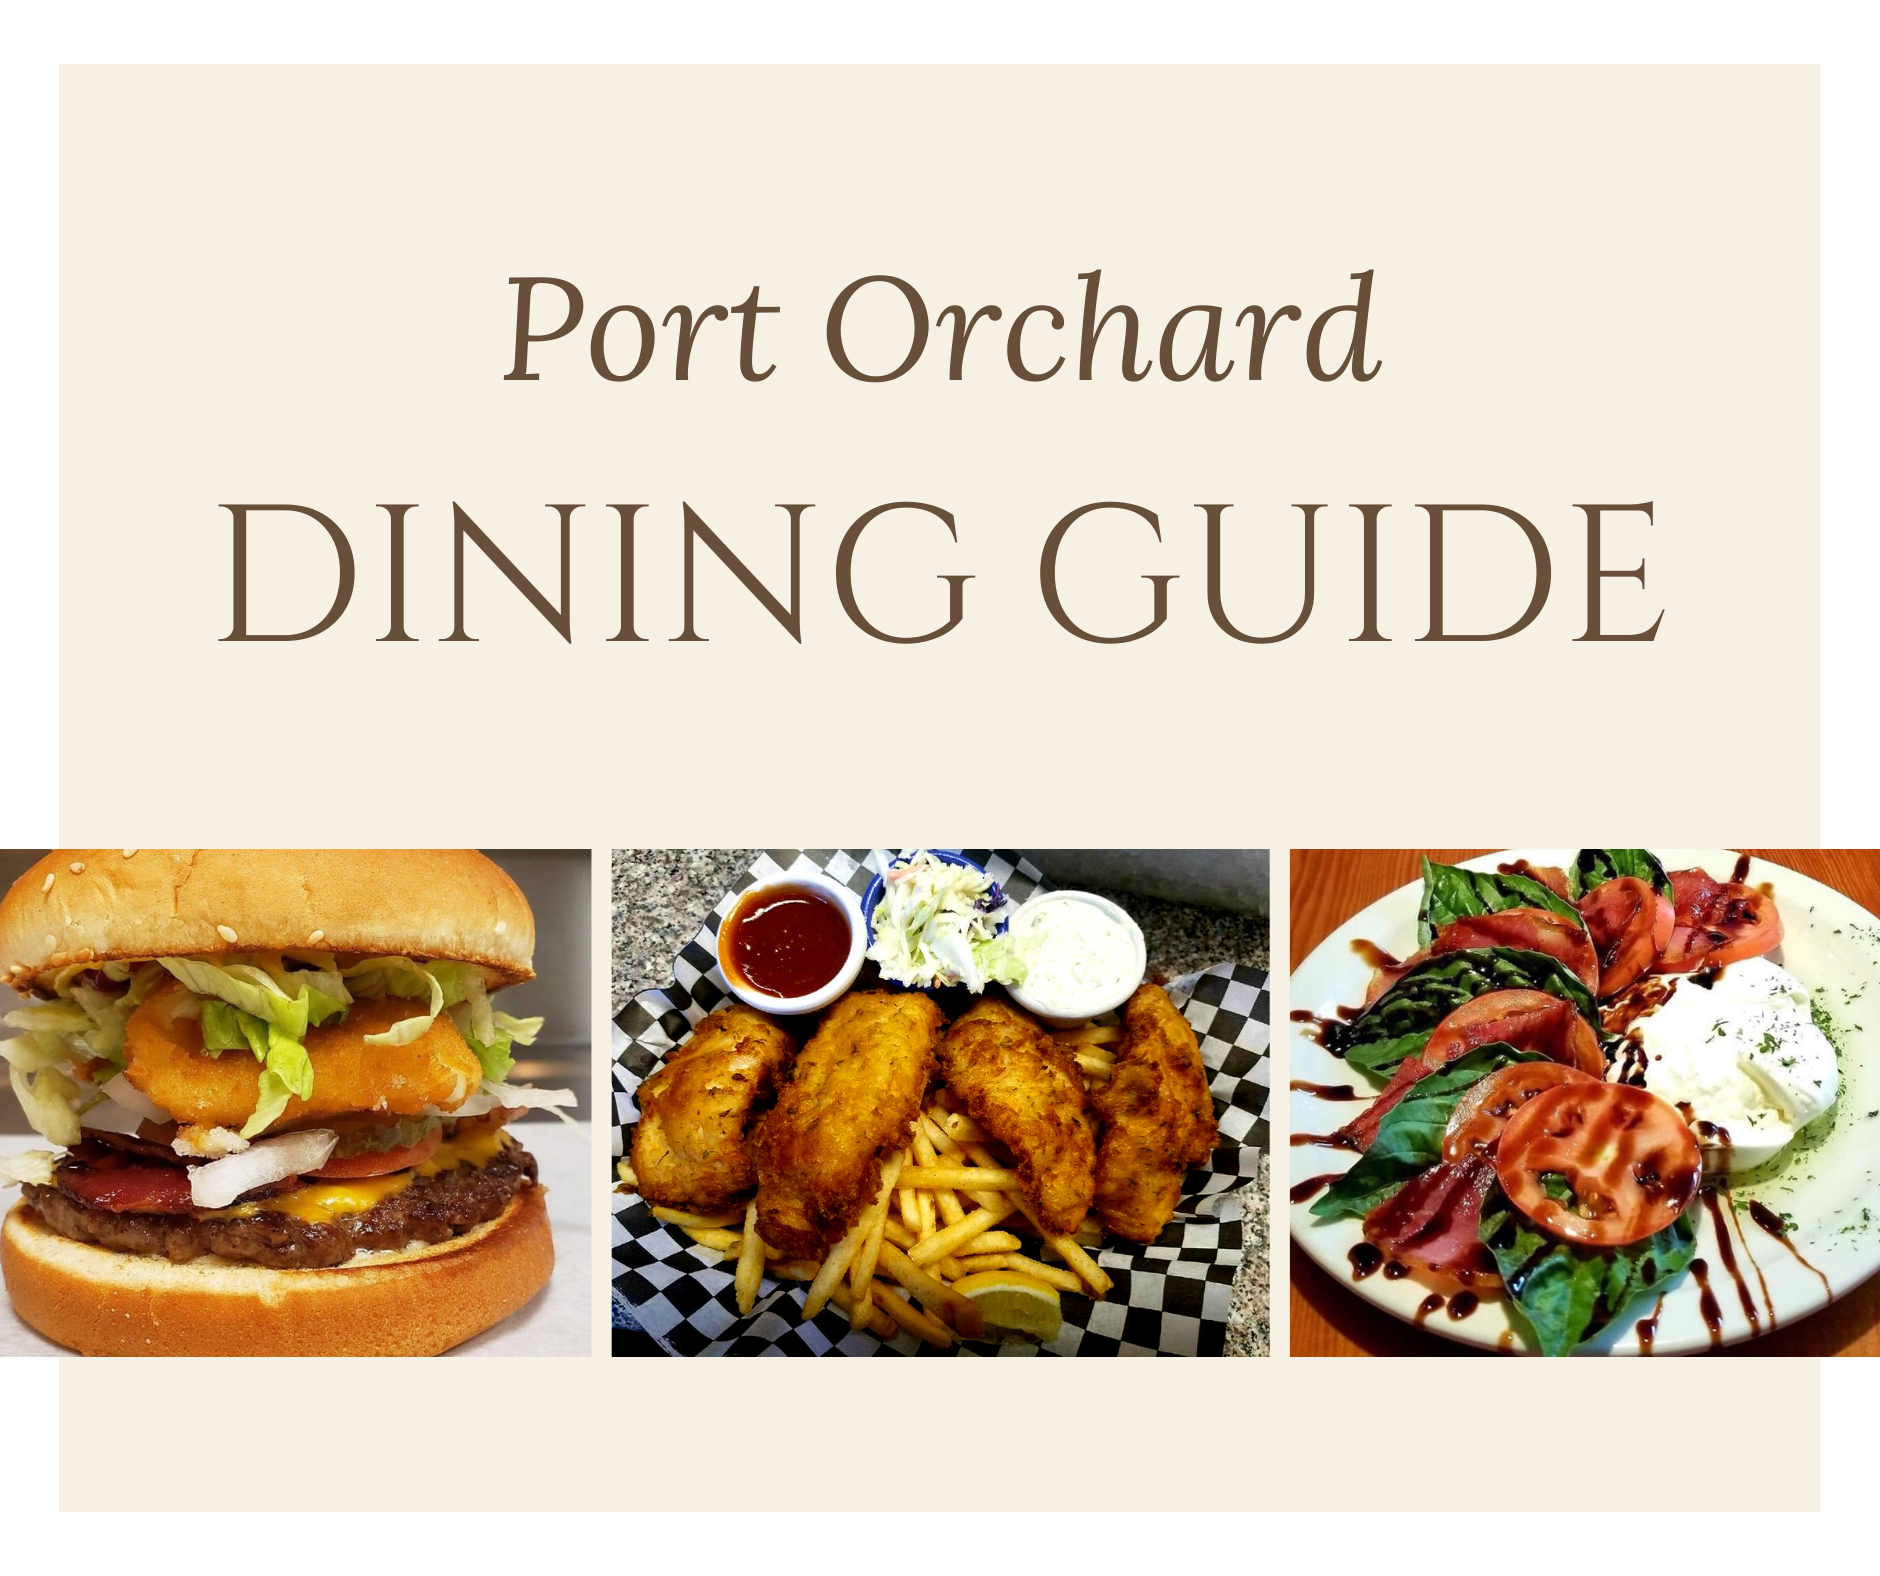 Port Orchard Dining Guide